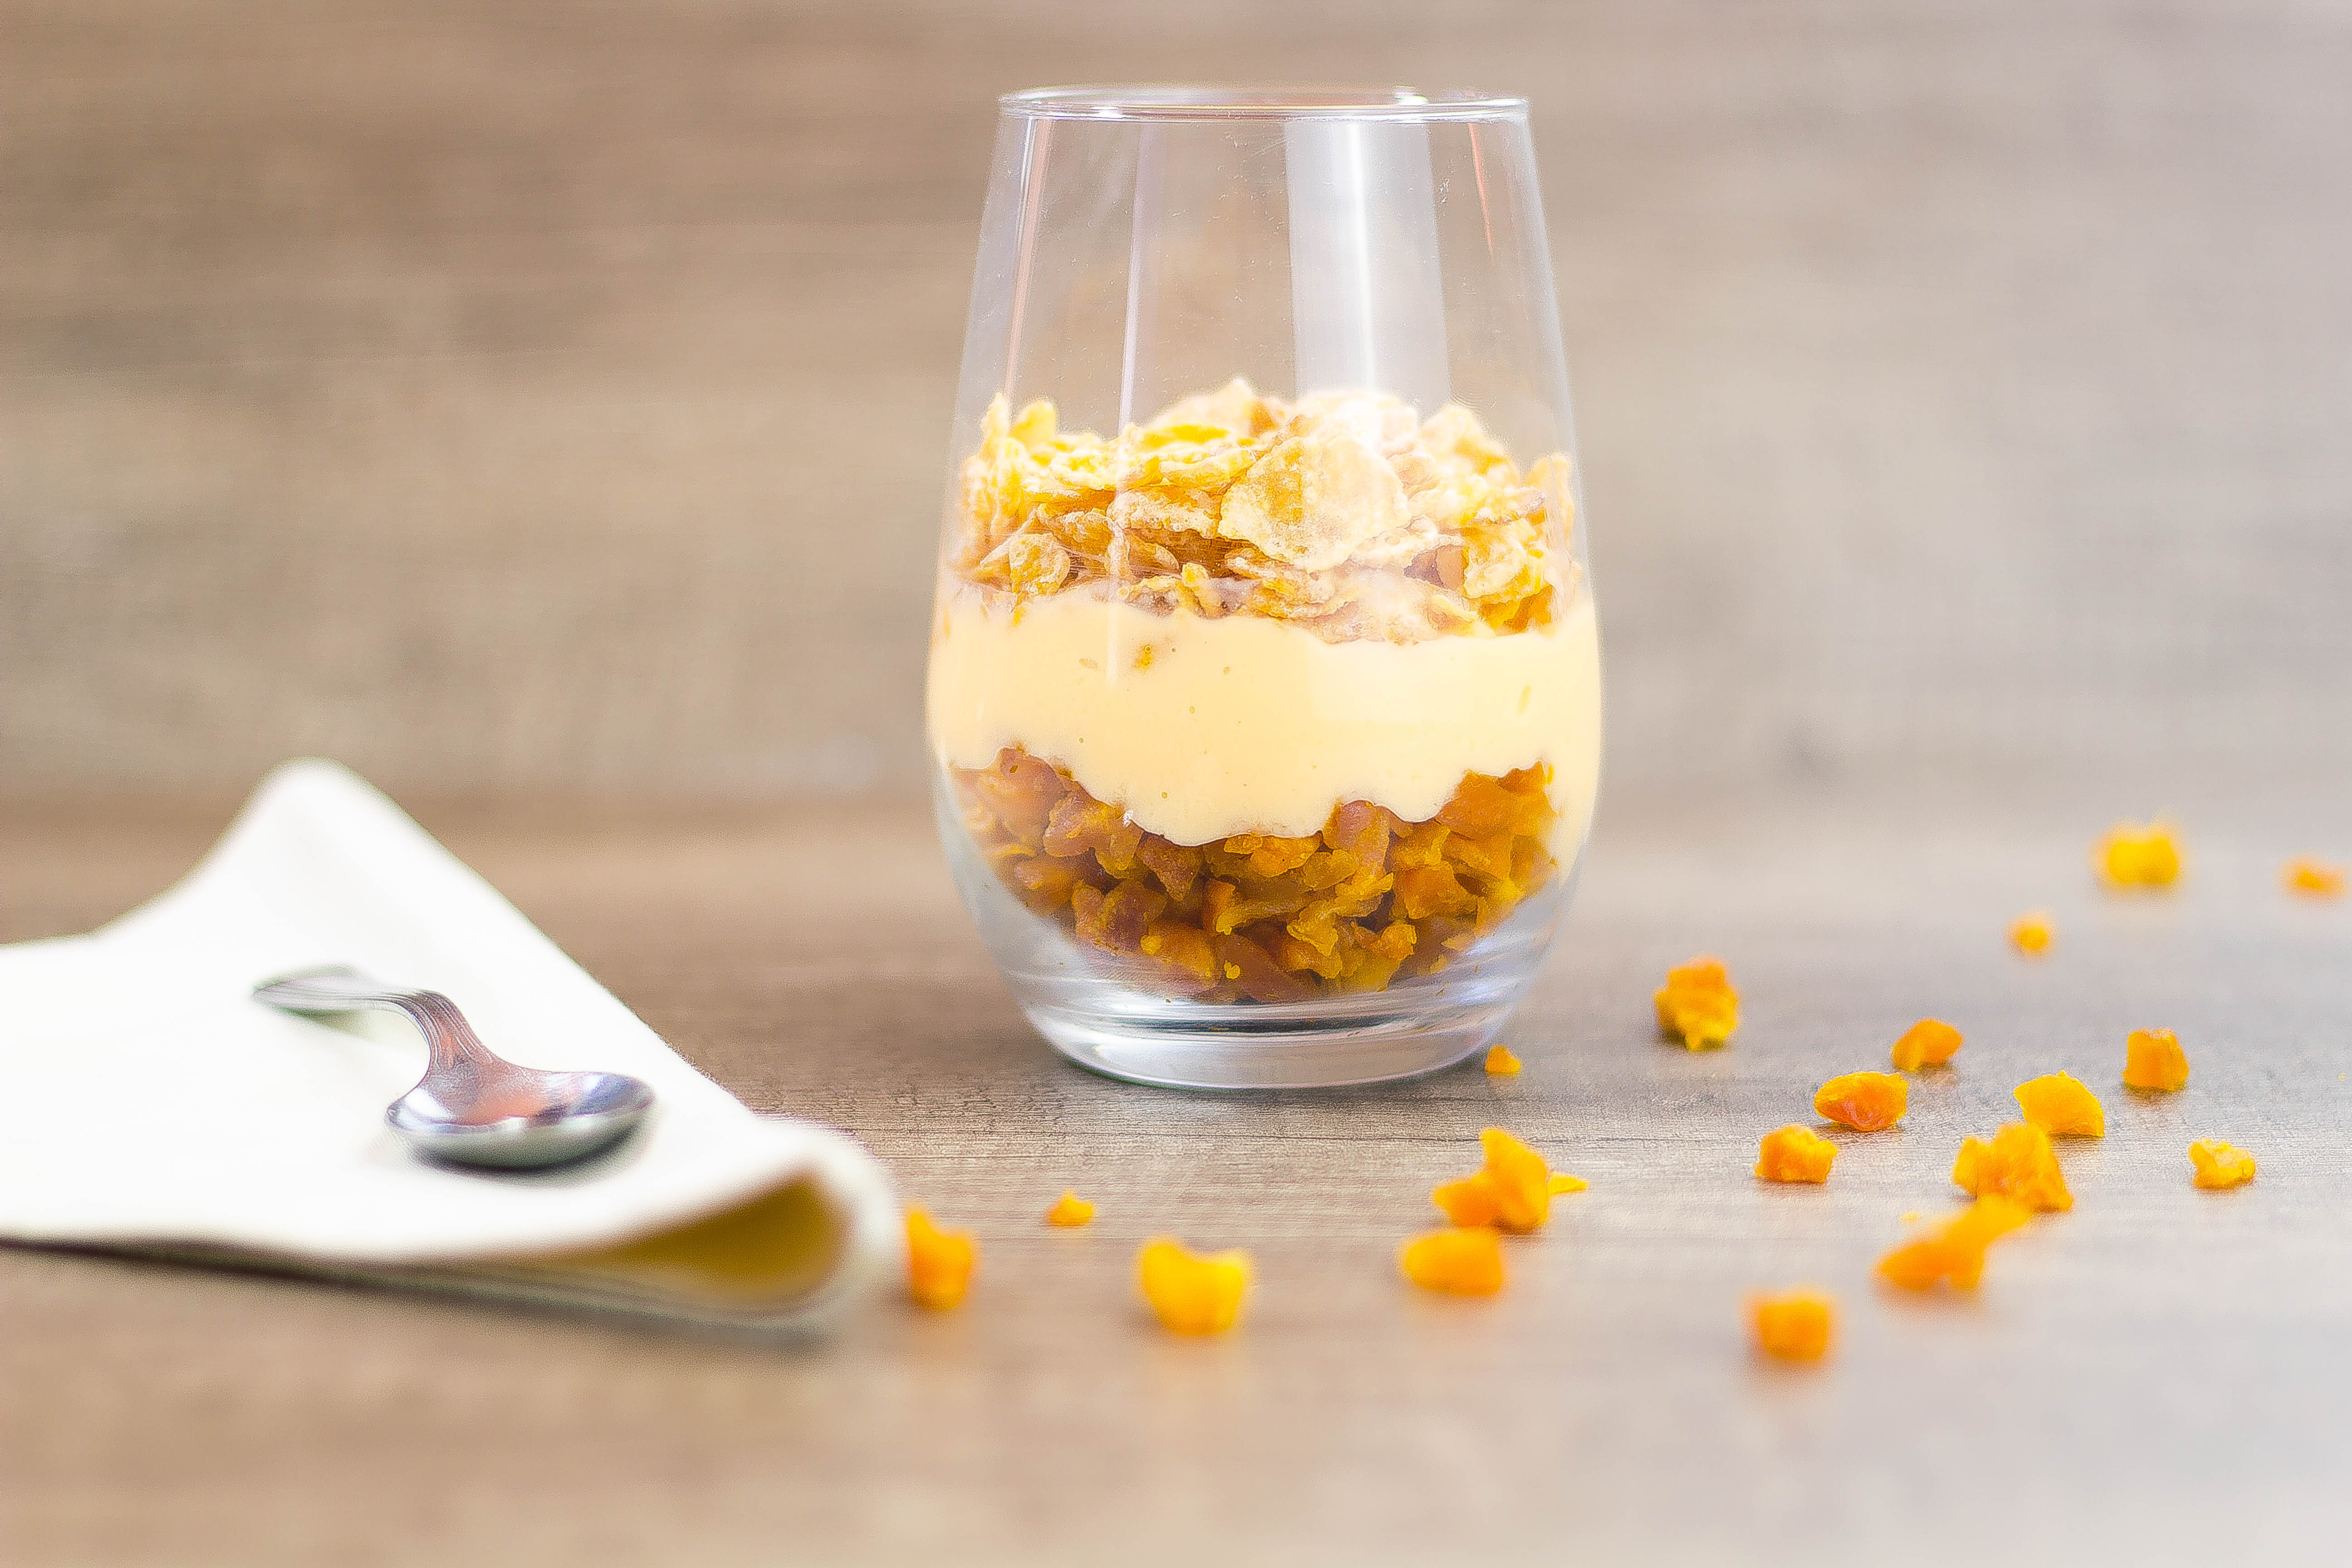 Dried Peaches Yogurt with Cereal topping